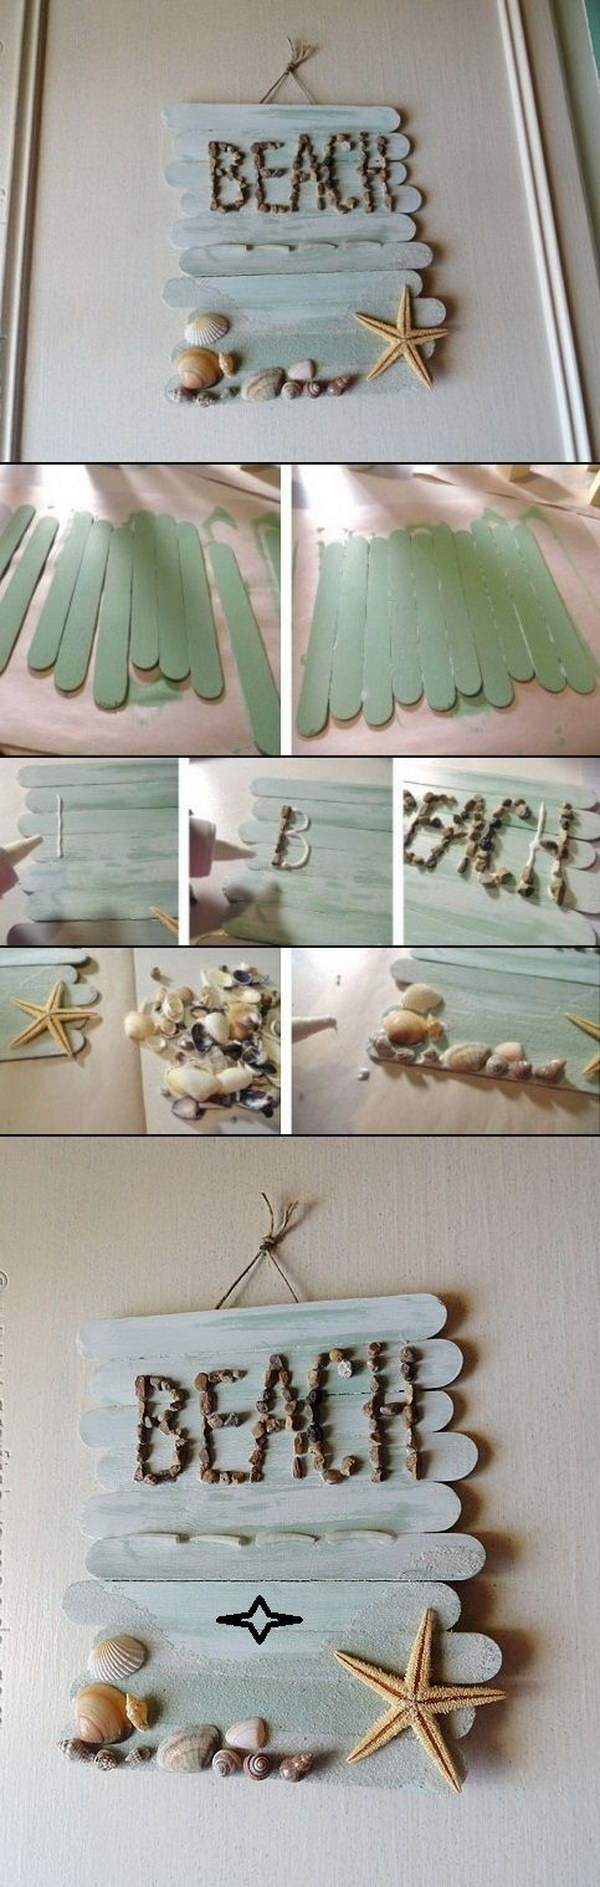 DIY Craft Stick Wall Art.